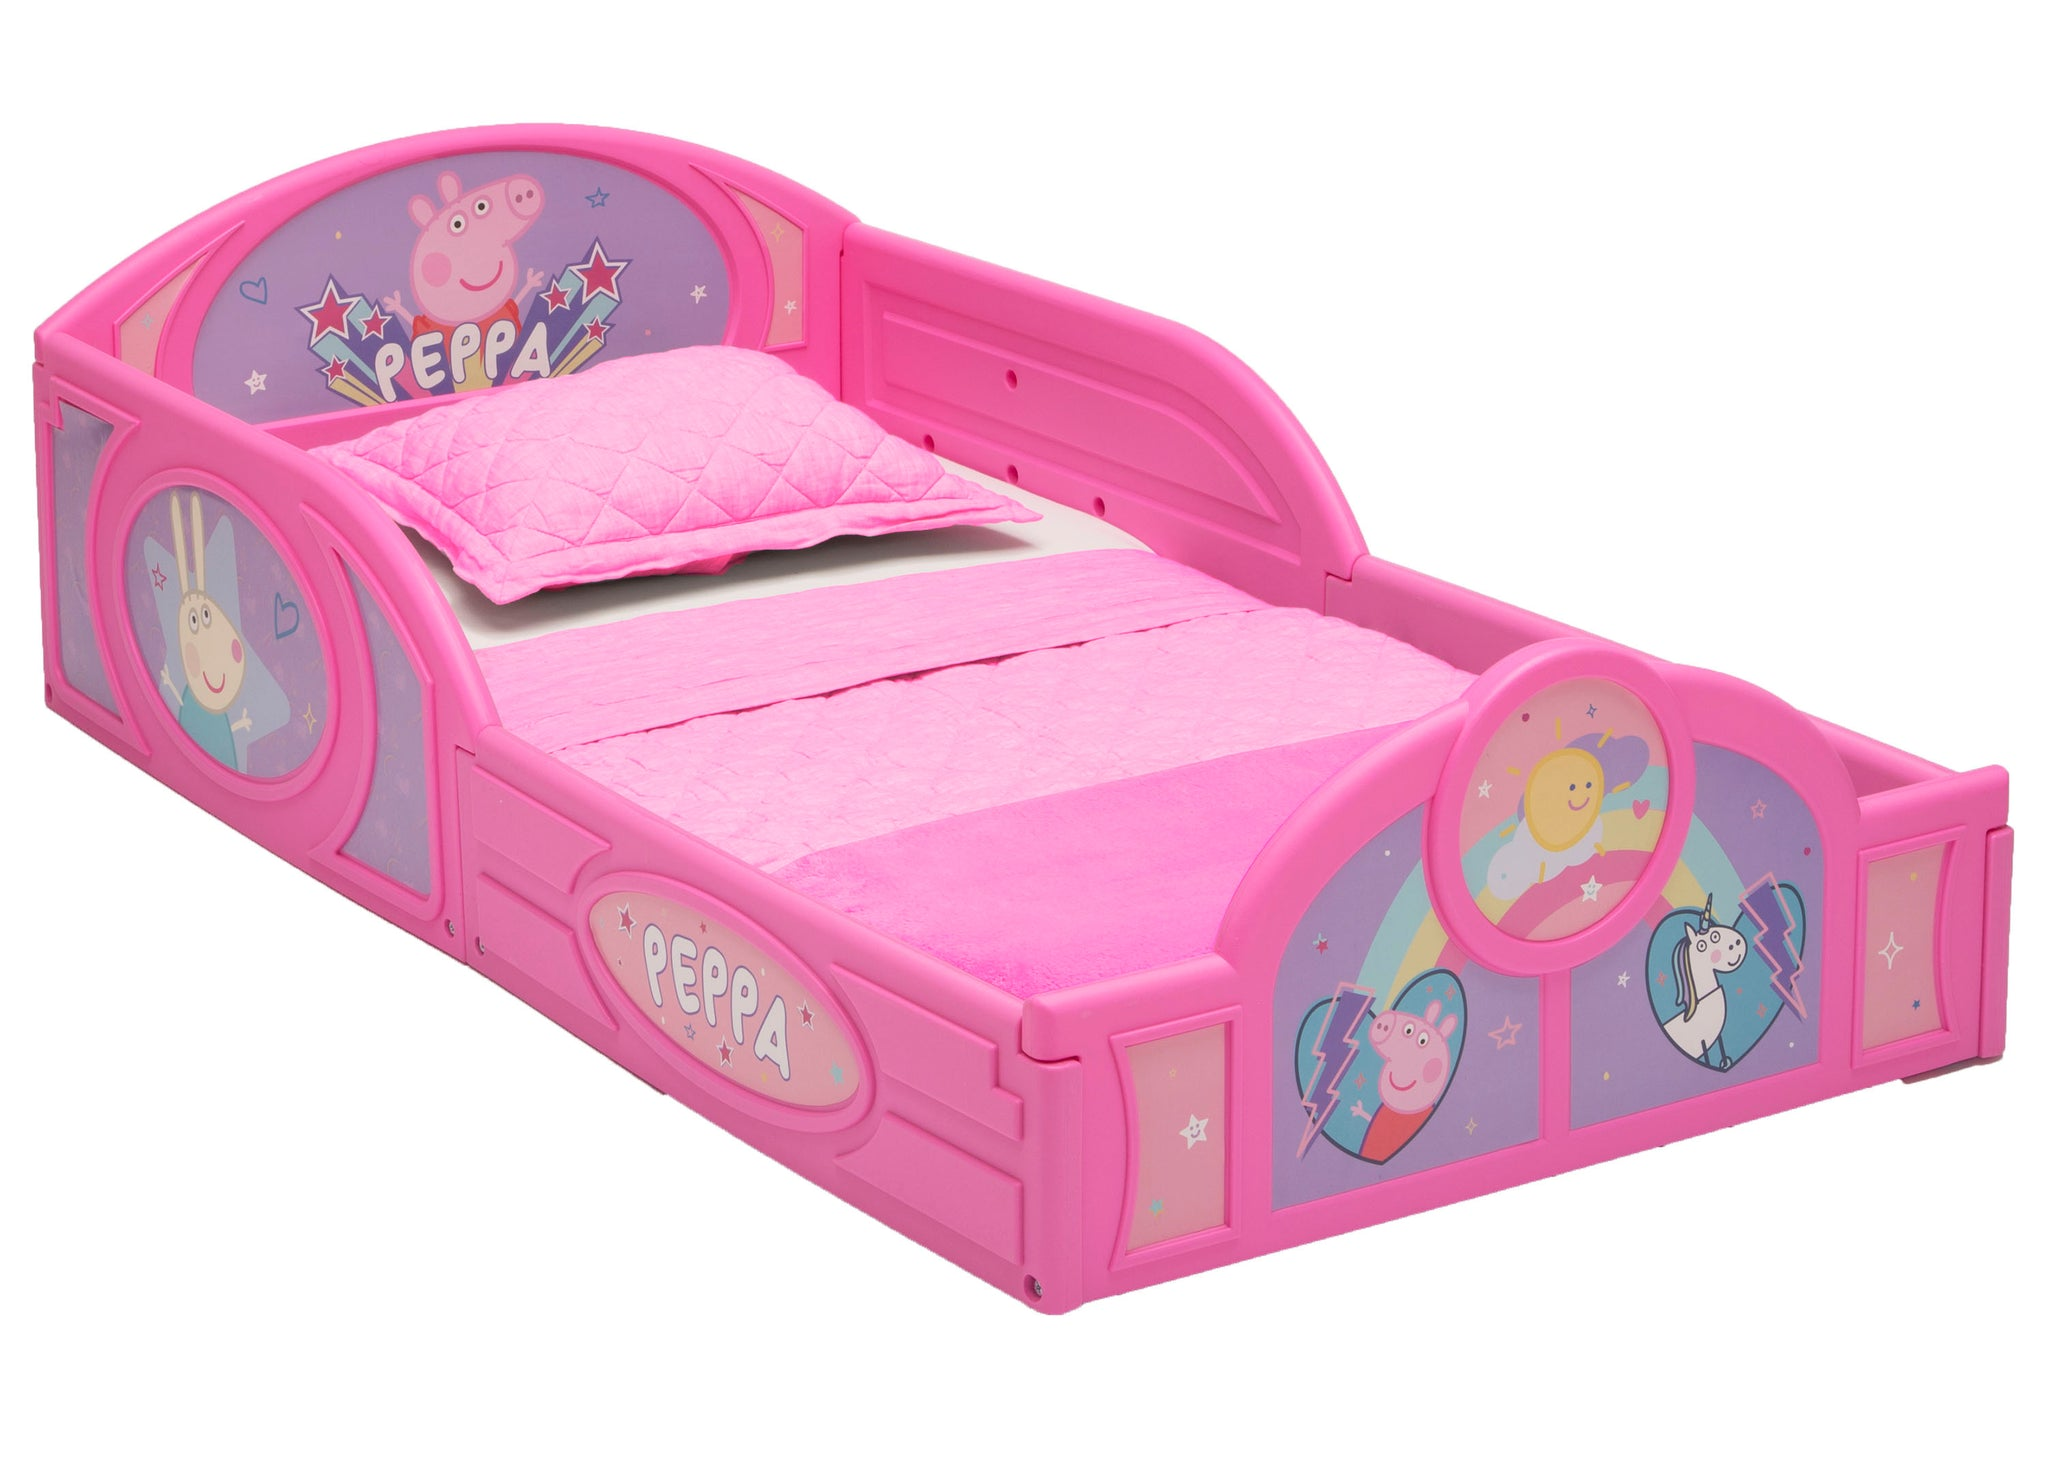 Delta Children Peppa Pig (1171) Plastic Sleep and Play Toddler Bed, Right Silo View